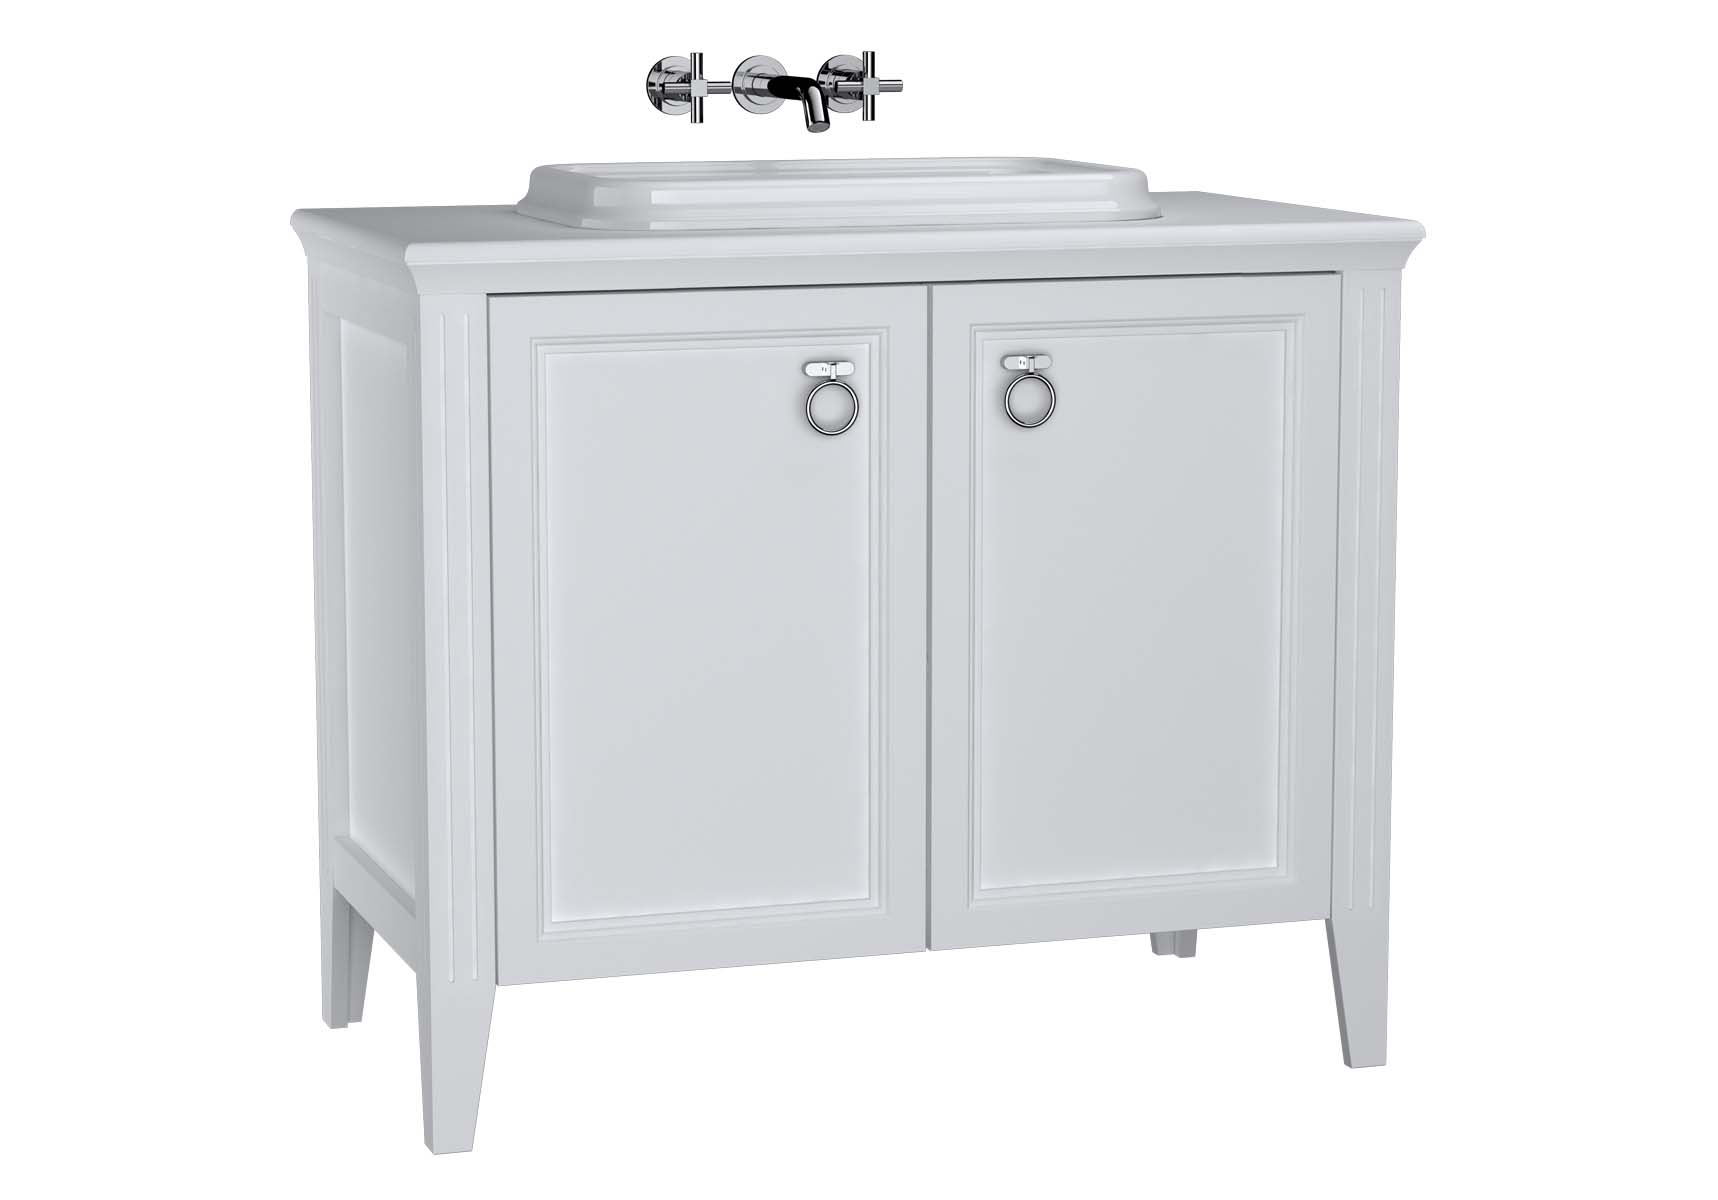 Valarte Washbasin Unit, 100 cm, with doors, with countertop washbasin, Matte White